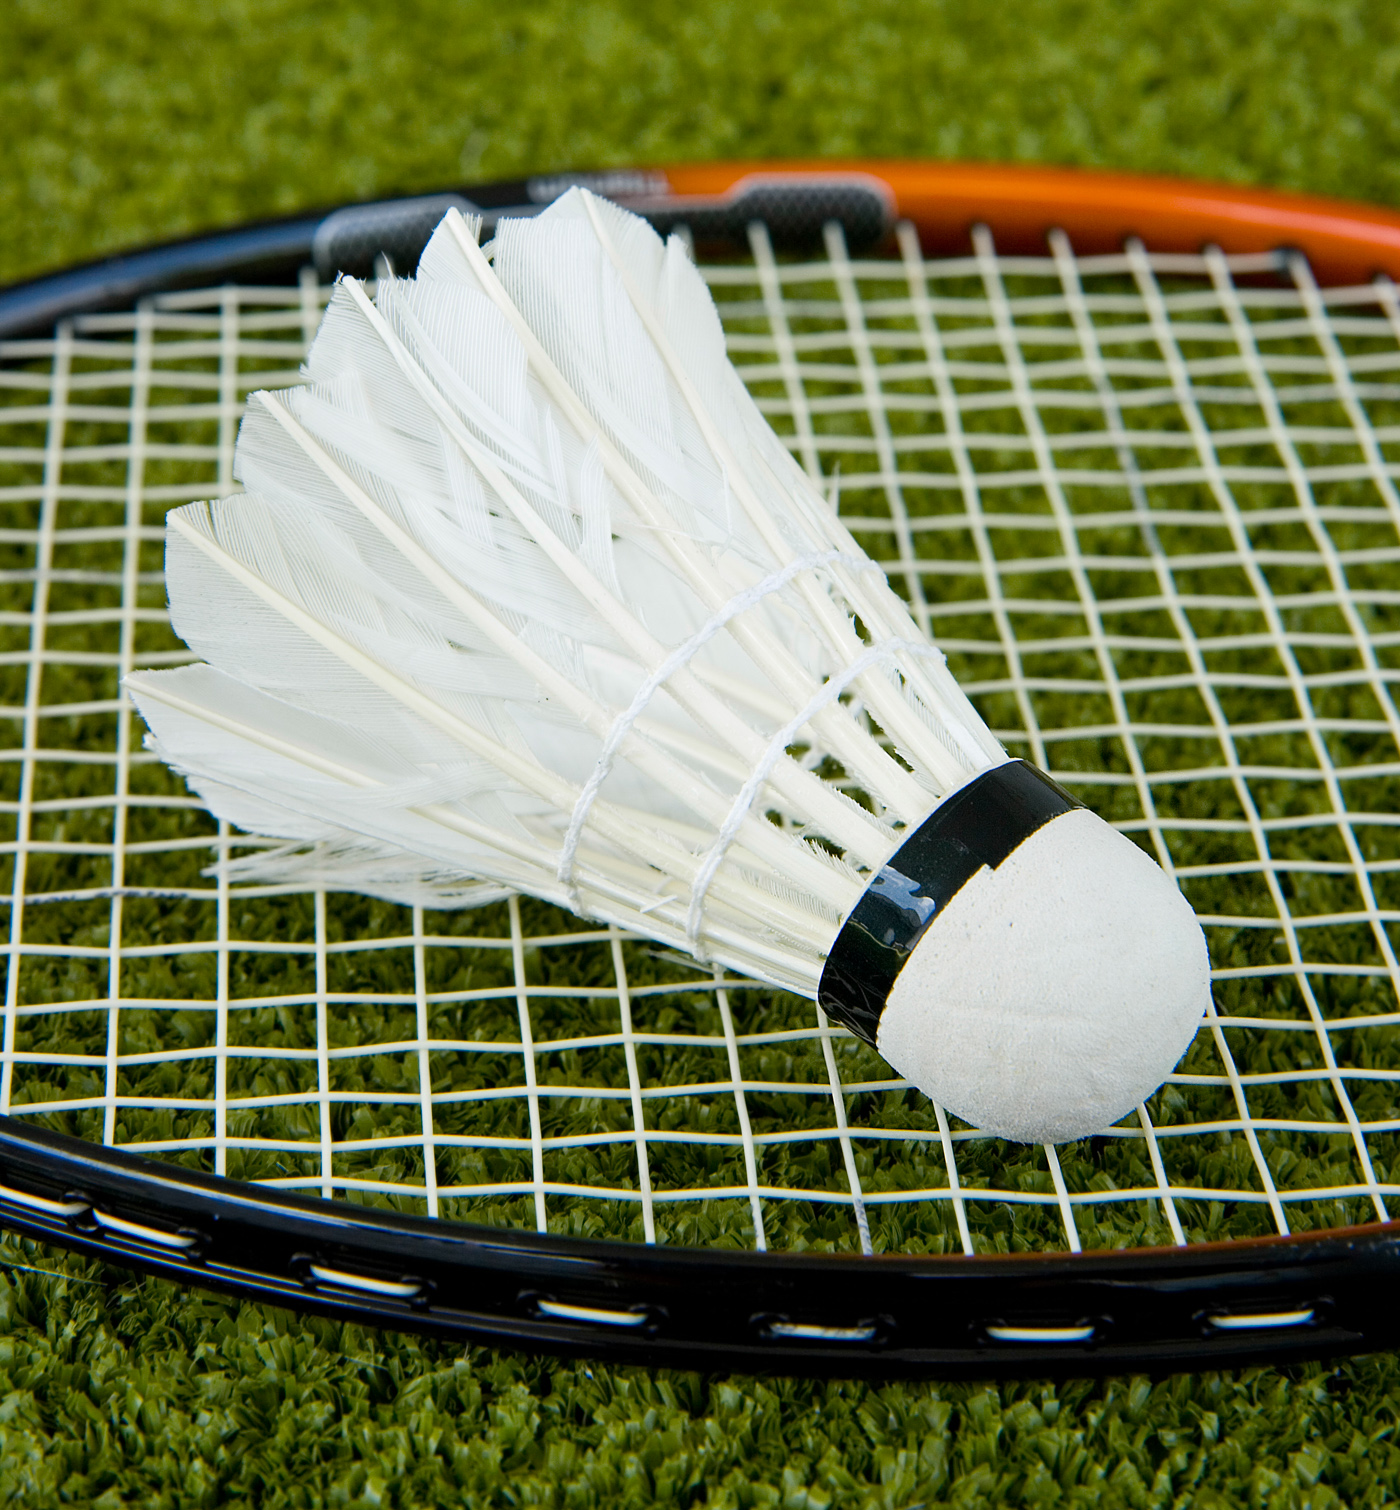 Badminton Racket And Shuttlecock, Active, Match, Tournament, Strings, HQ Photo